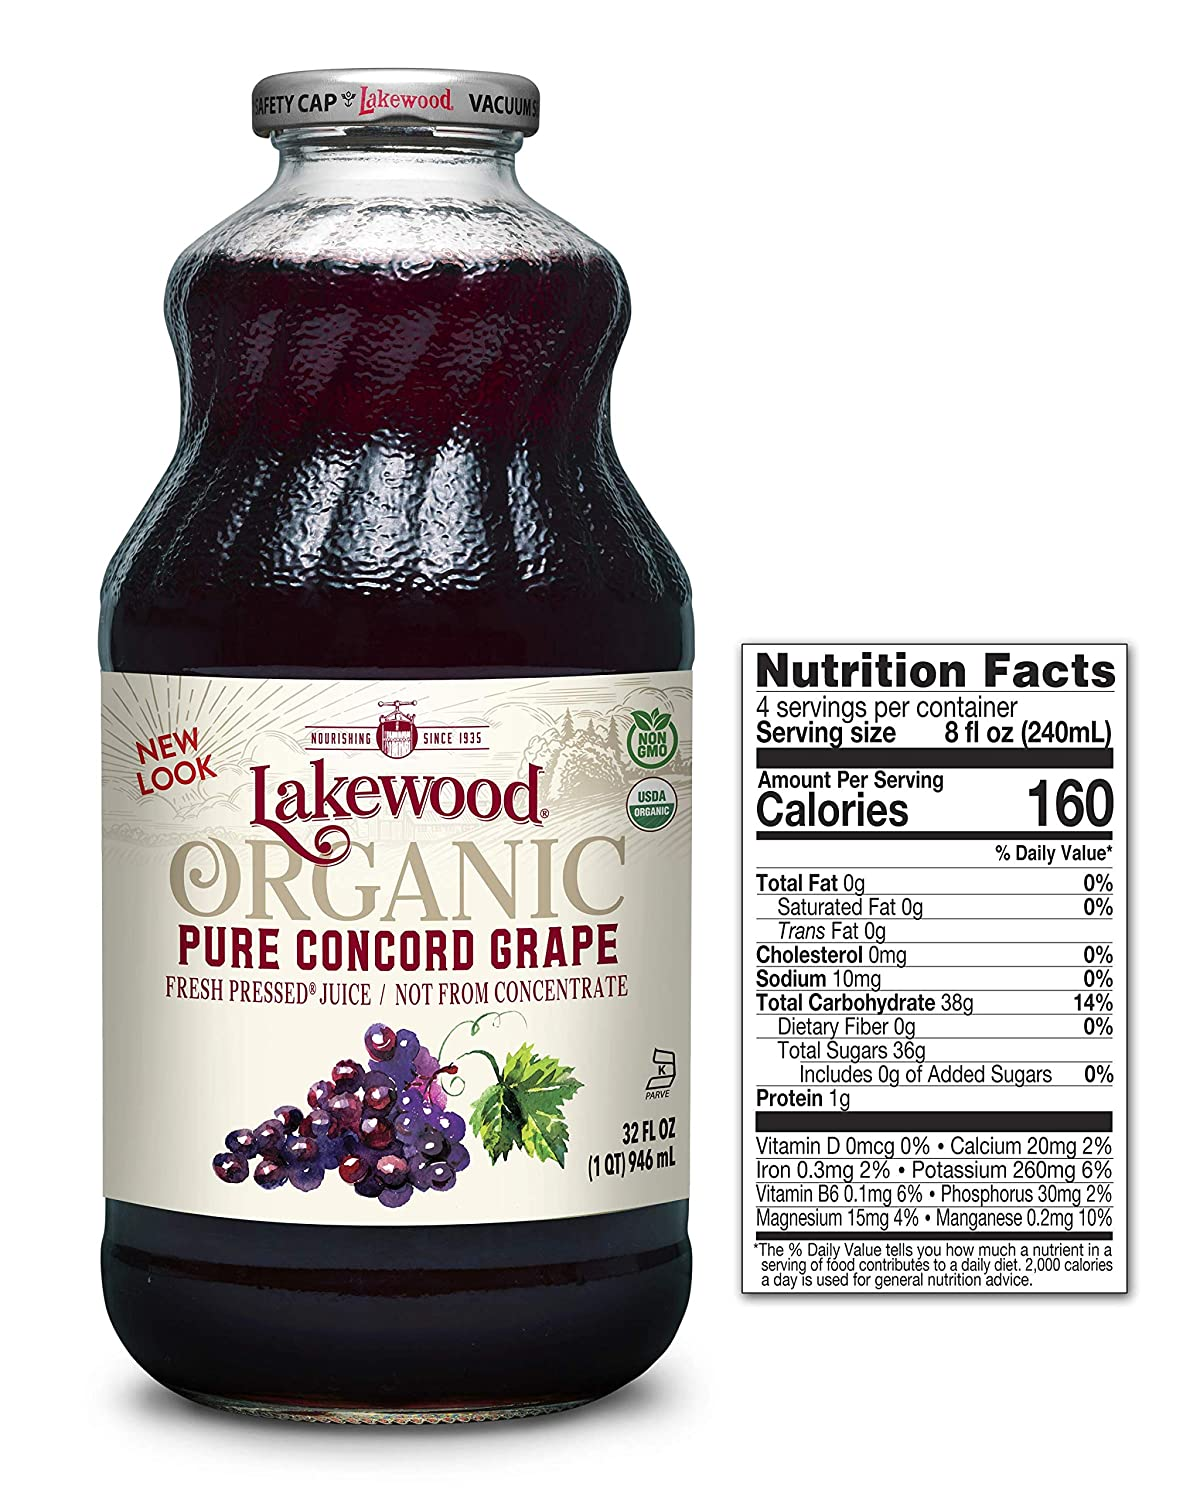 Lakewood Organic PURE Concord Grape Juice, 32-Ounce Bottles (Pack of 6)